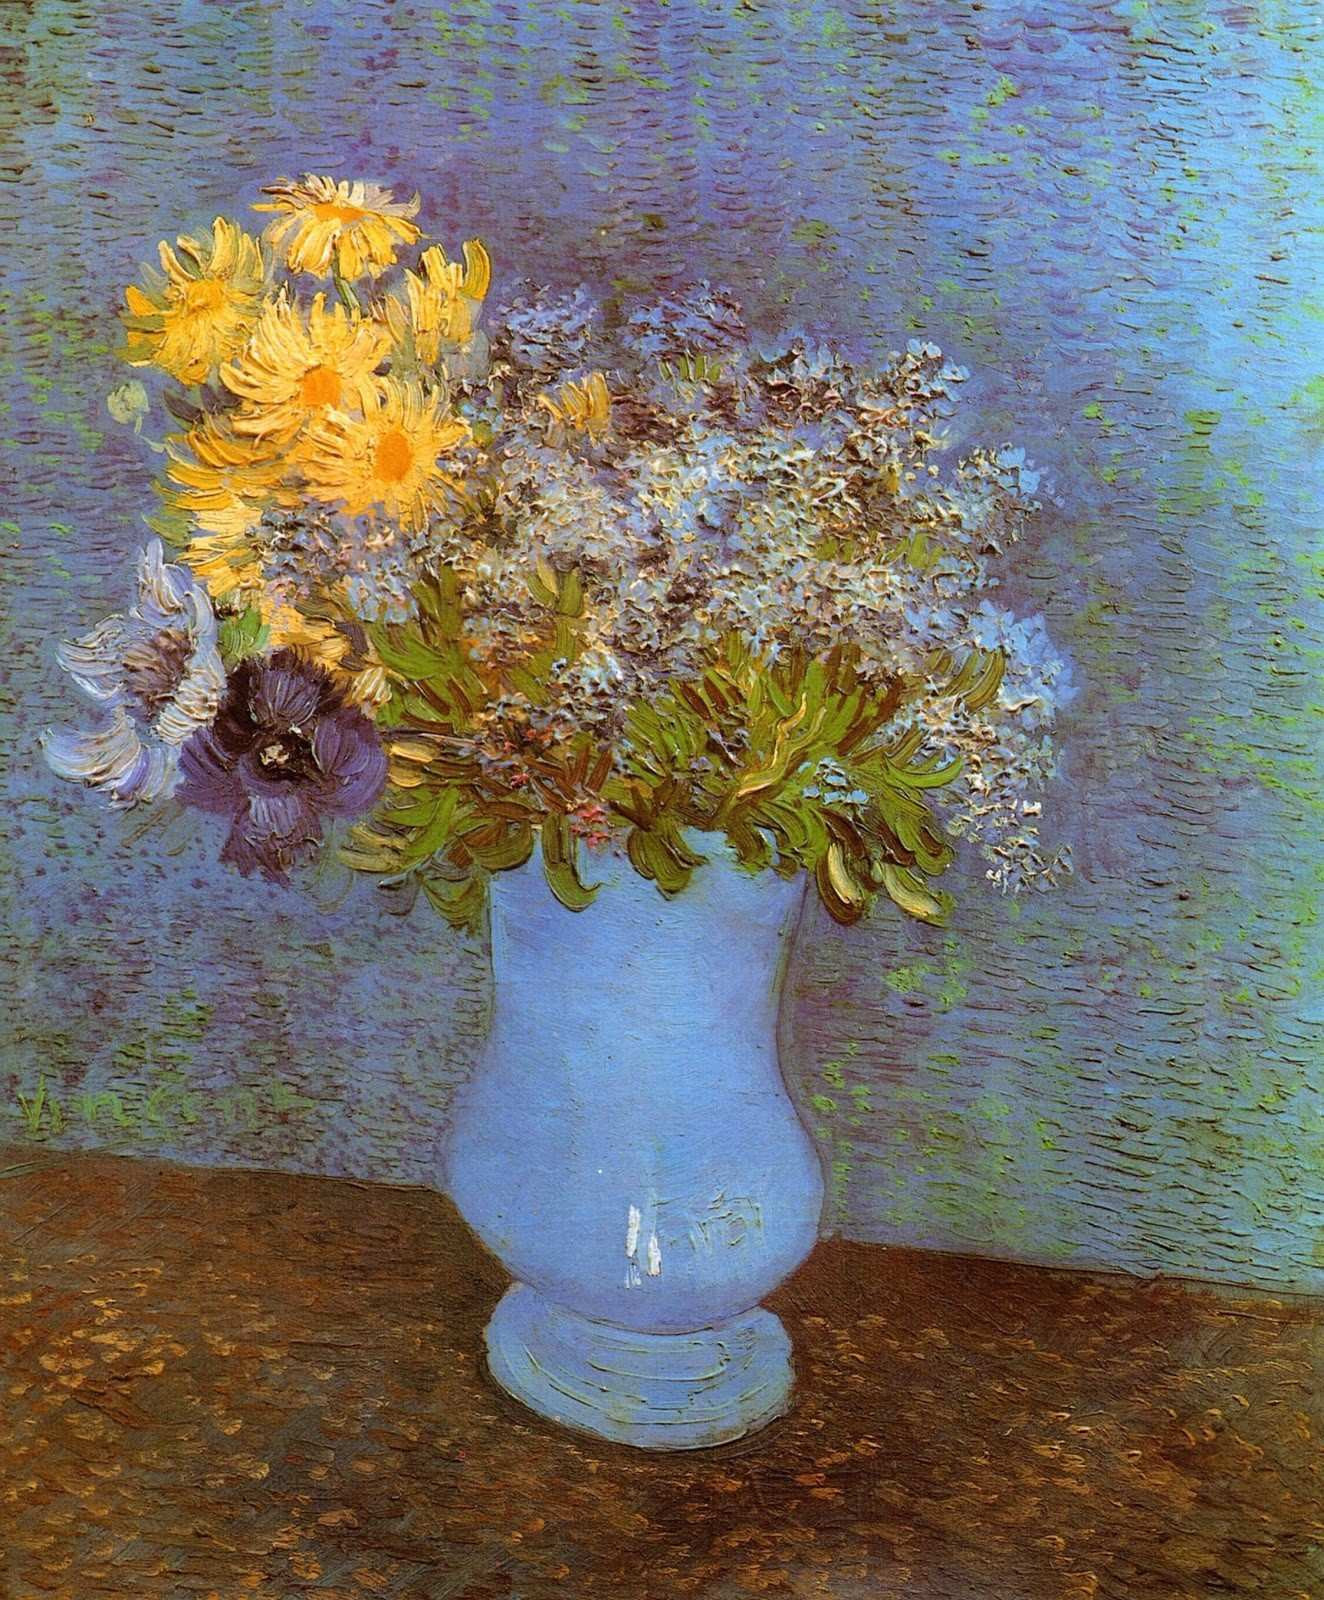 vase with flowers vincent van gogh of awesome van gogh paintings flowers farm house ideas in 32 impressive van gogh vase with irises